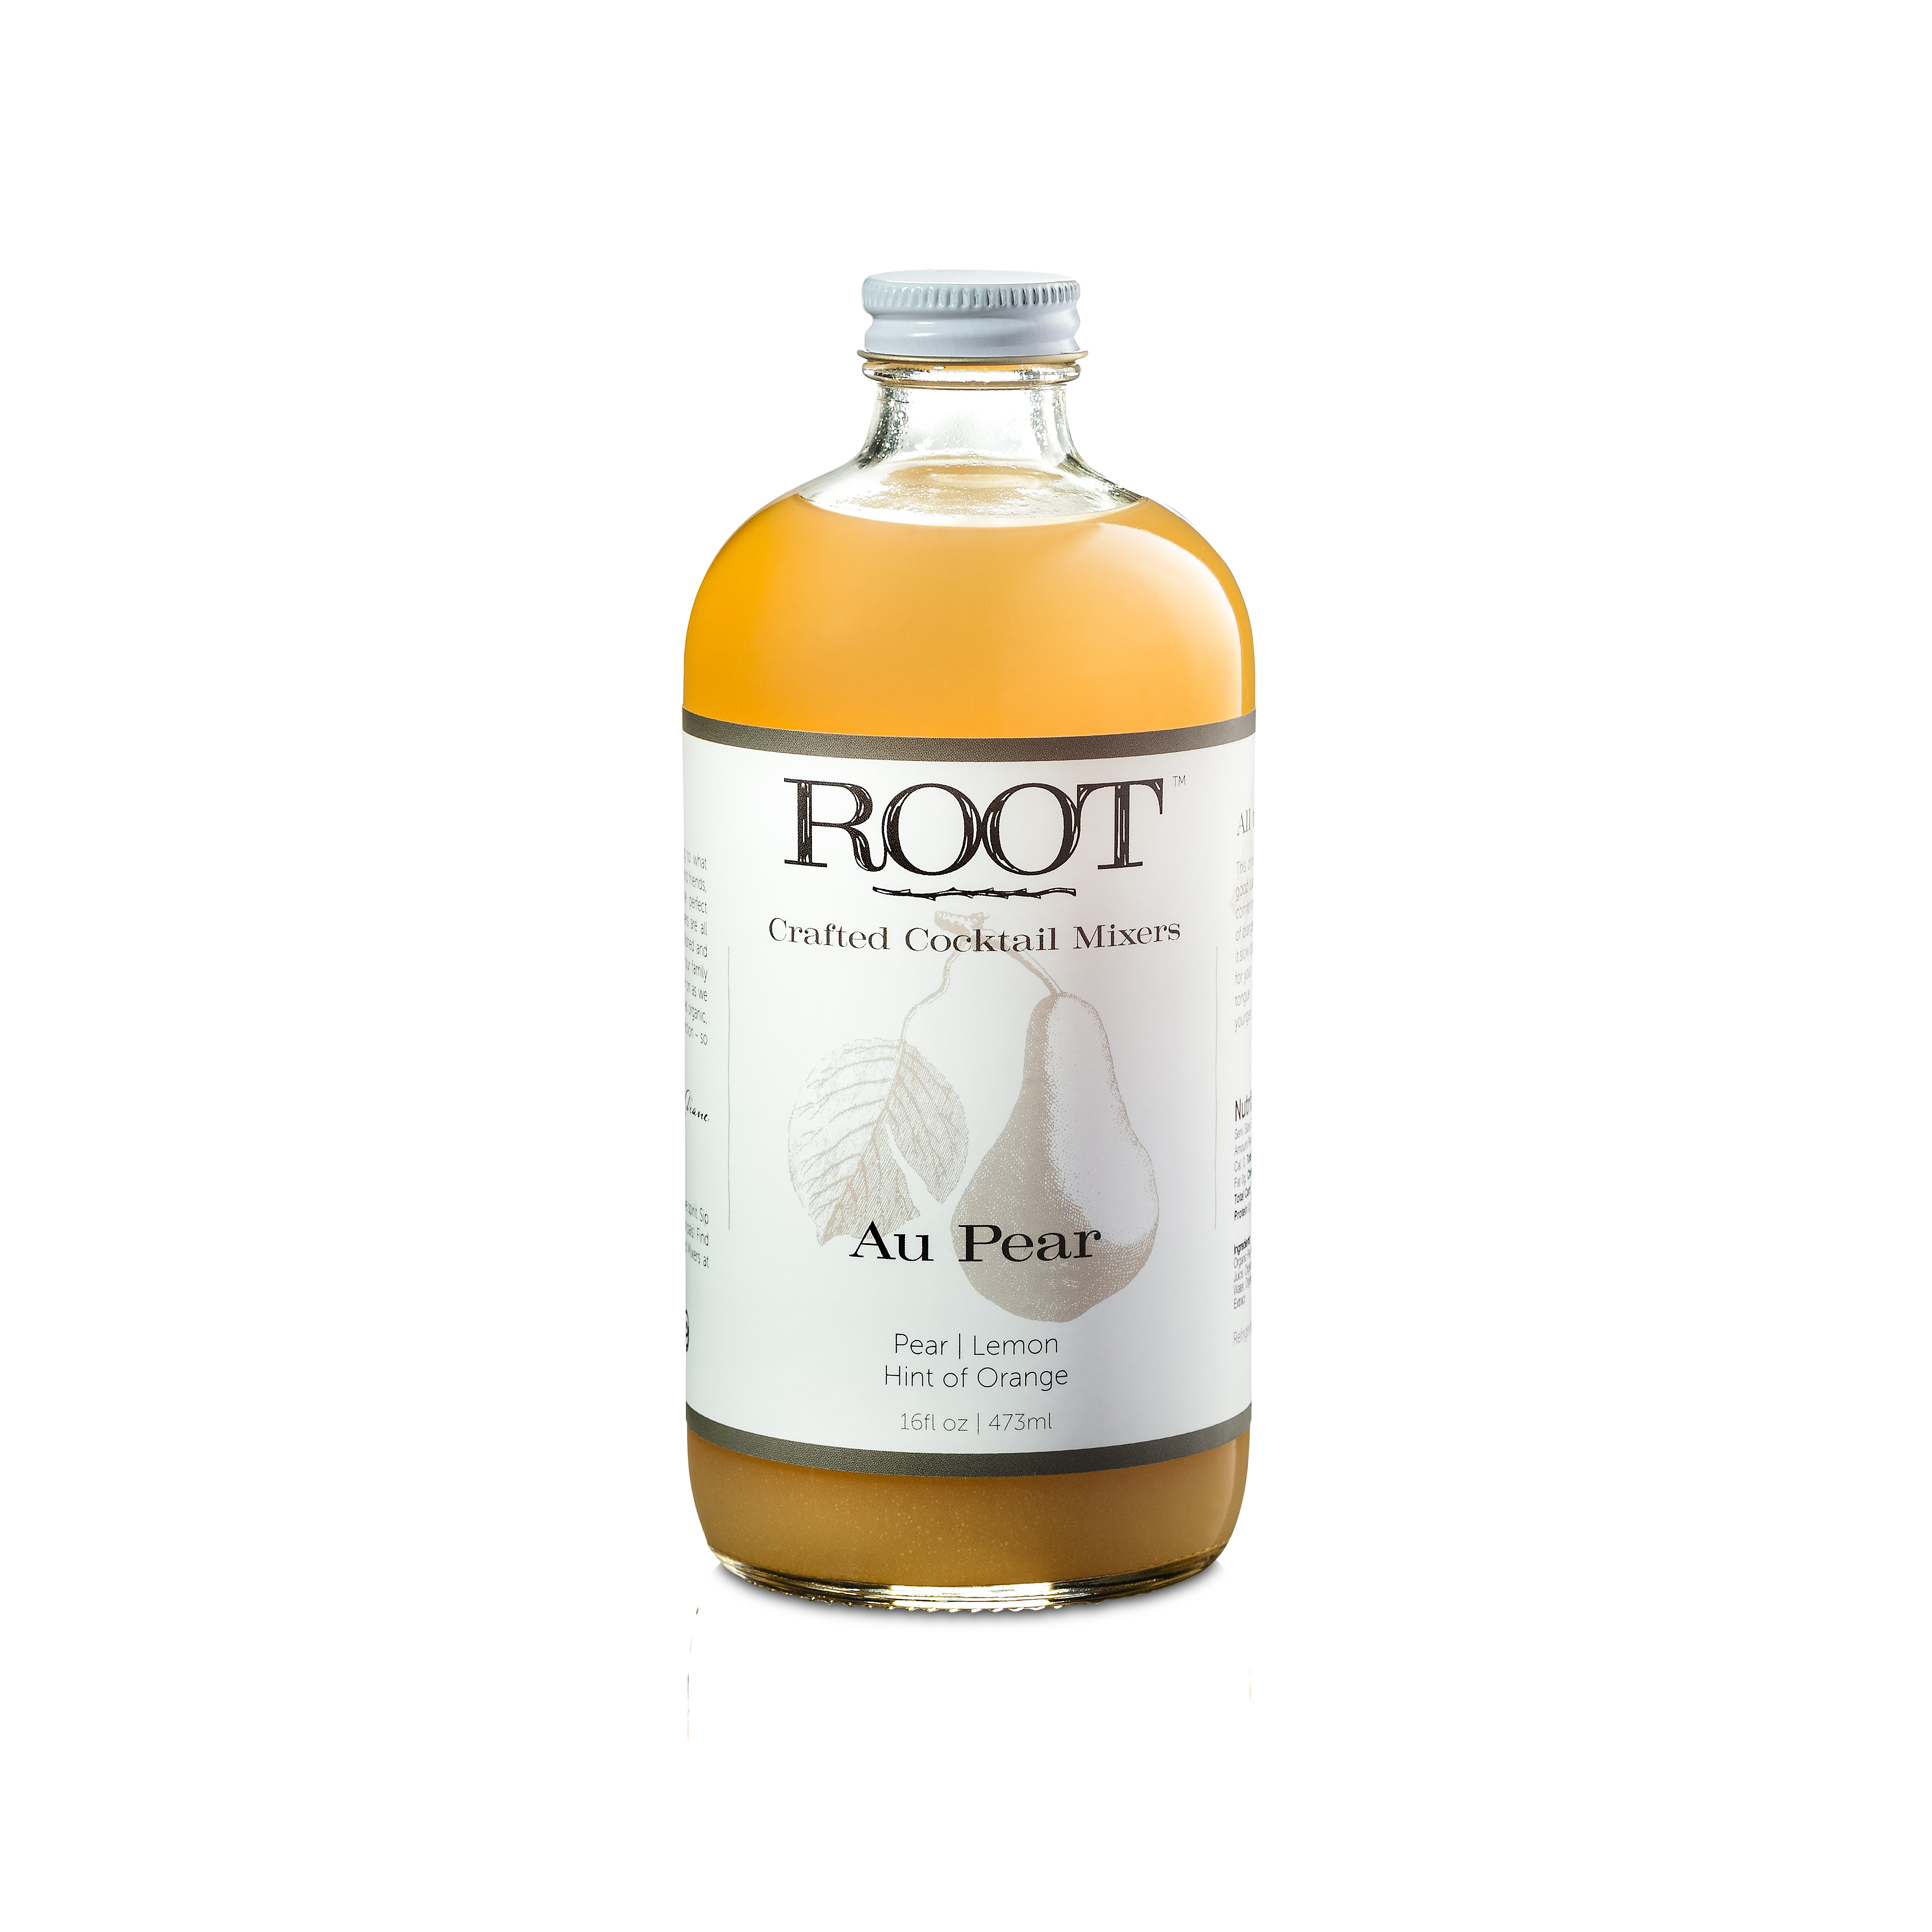 Photo of Au Pear - ROOT Crafted Cocktail Mixers (uploaded by company)